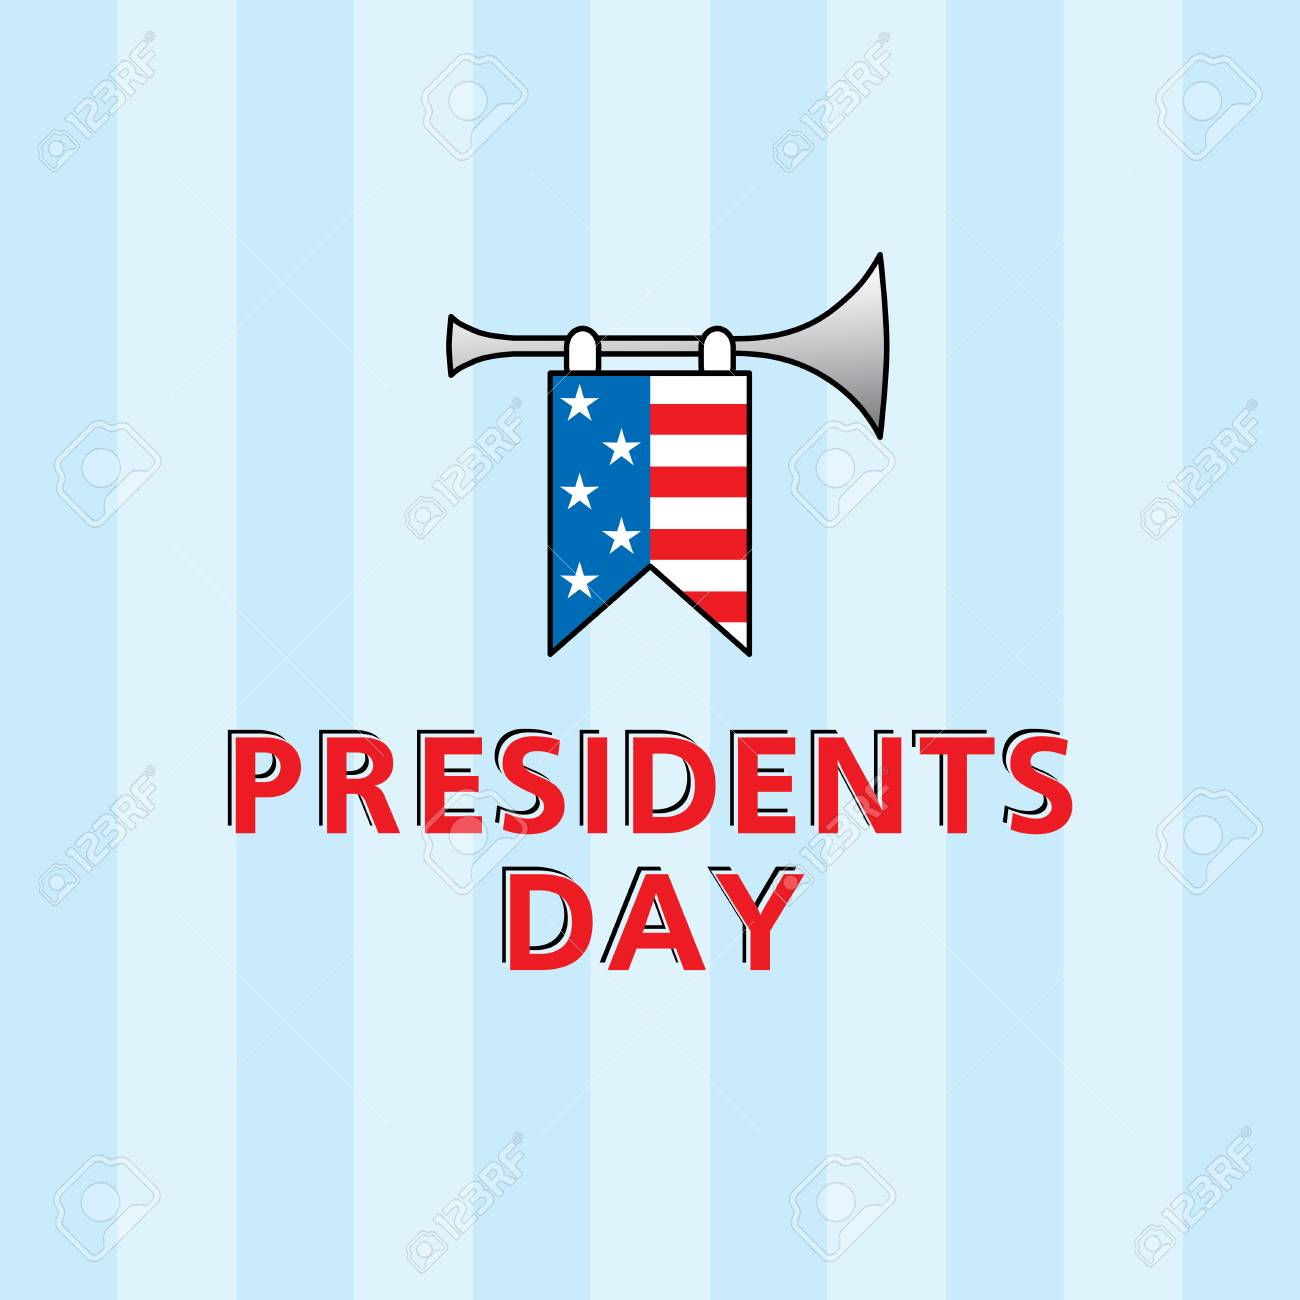 vector template for presidents day with american flag royalty free